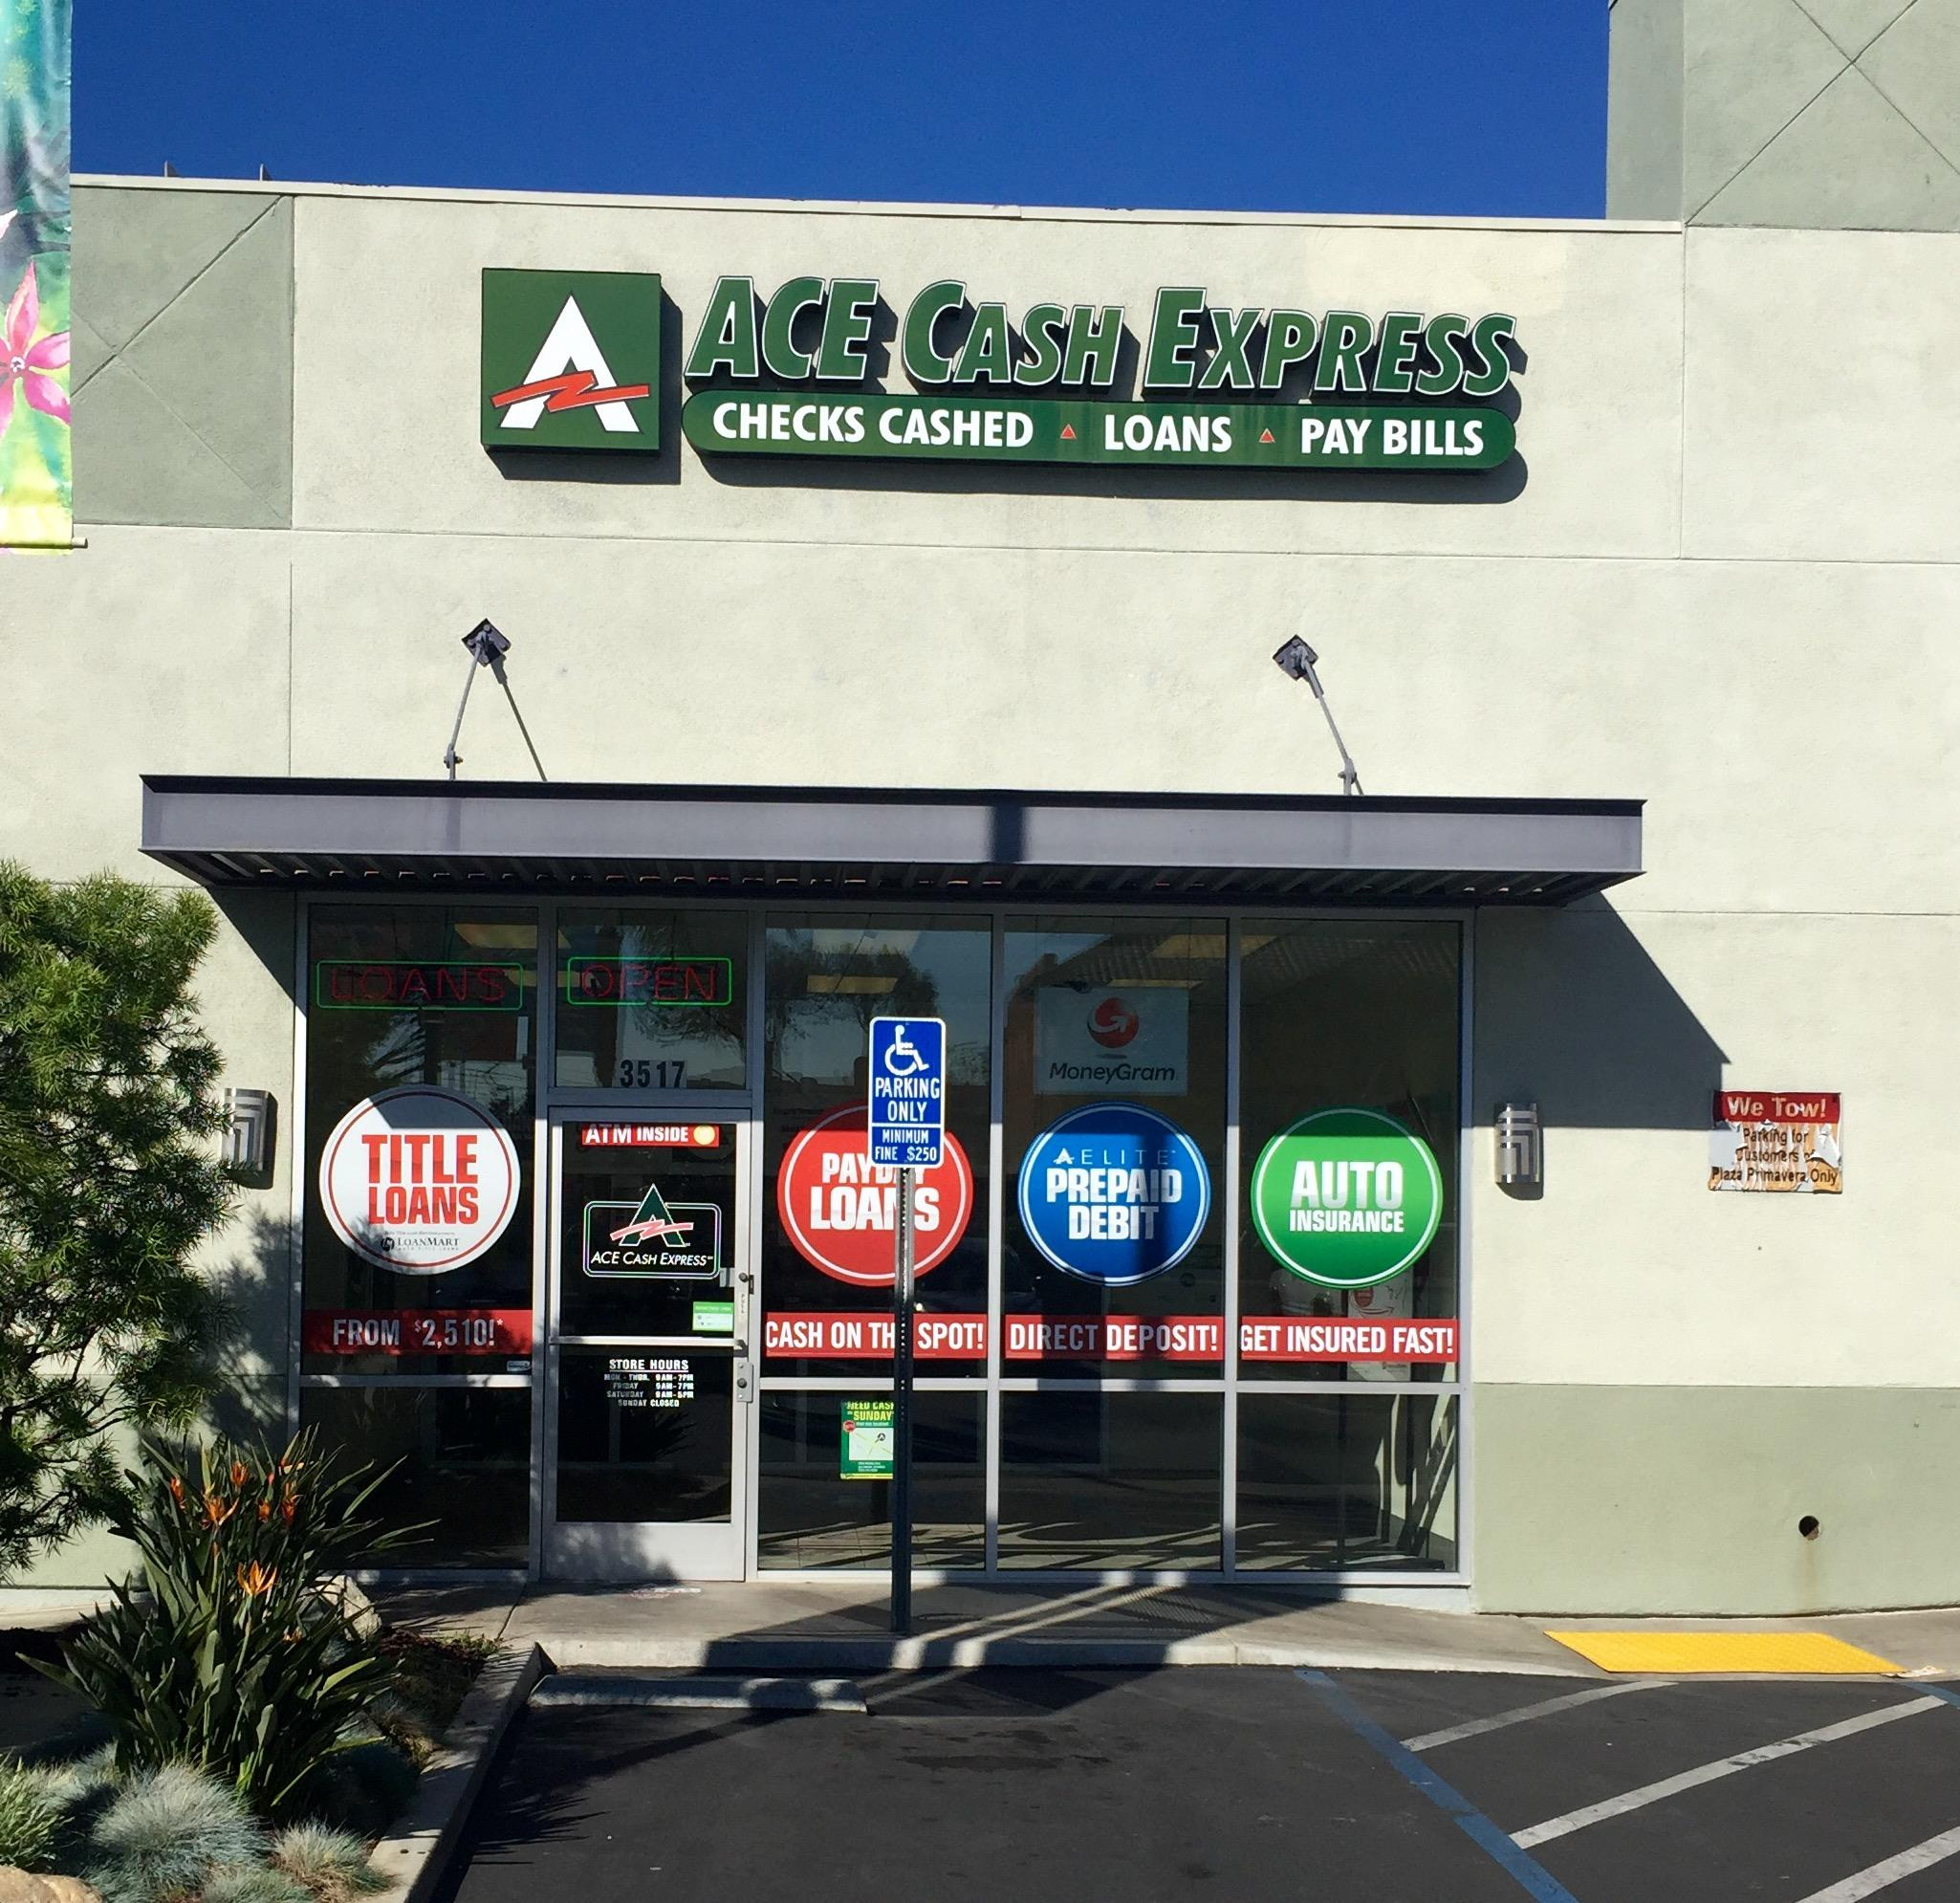 ACE Cash Express At 3517 E 1st St, Los Angeles, CA On Fave